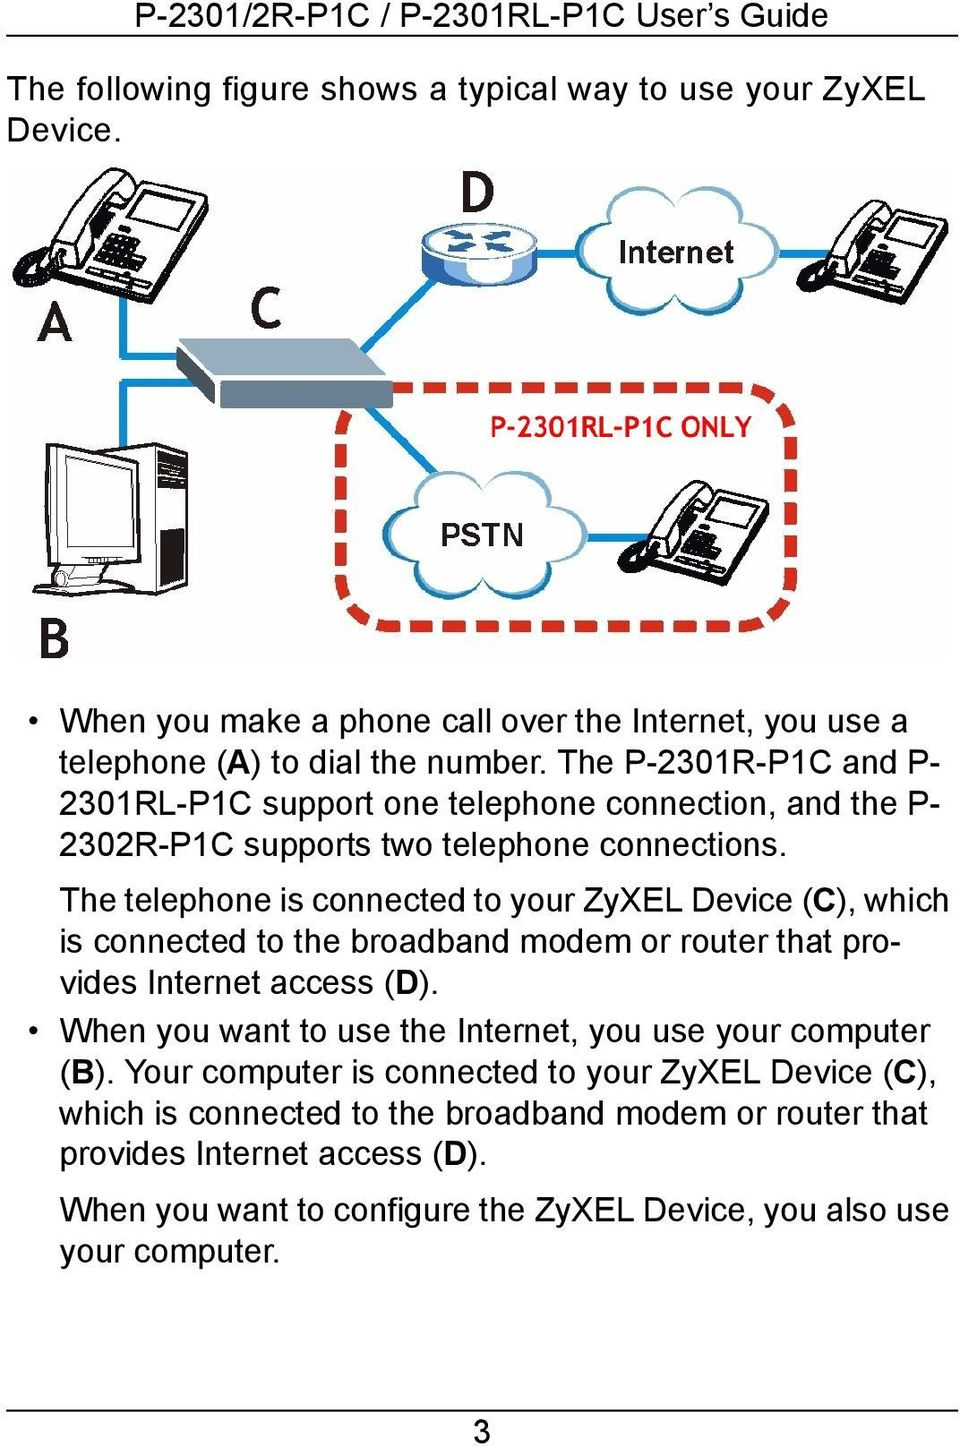 The telephone is connected to your ZyXEL Device (C), which is connected to the broadband modem or router that provides Internet access (D).